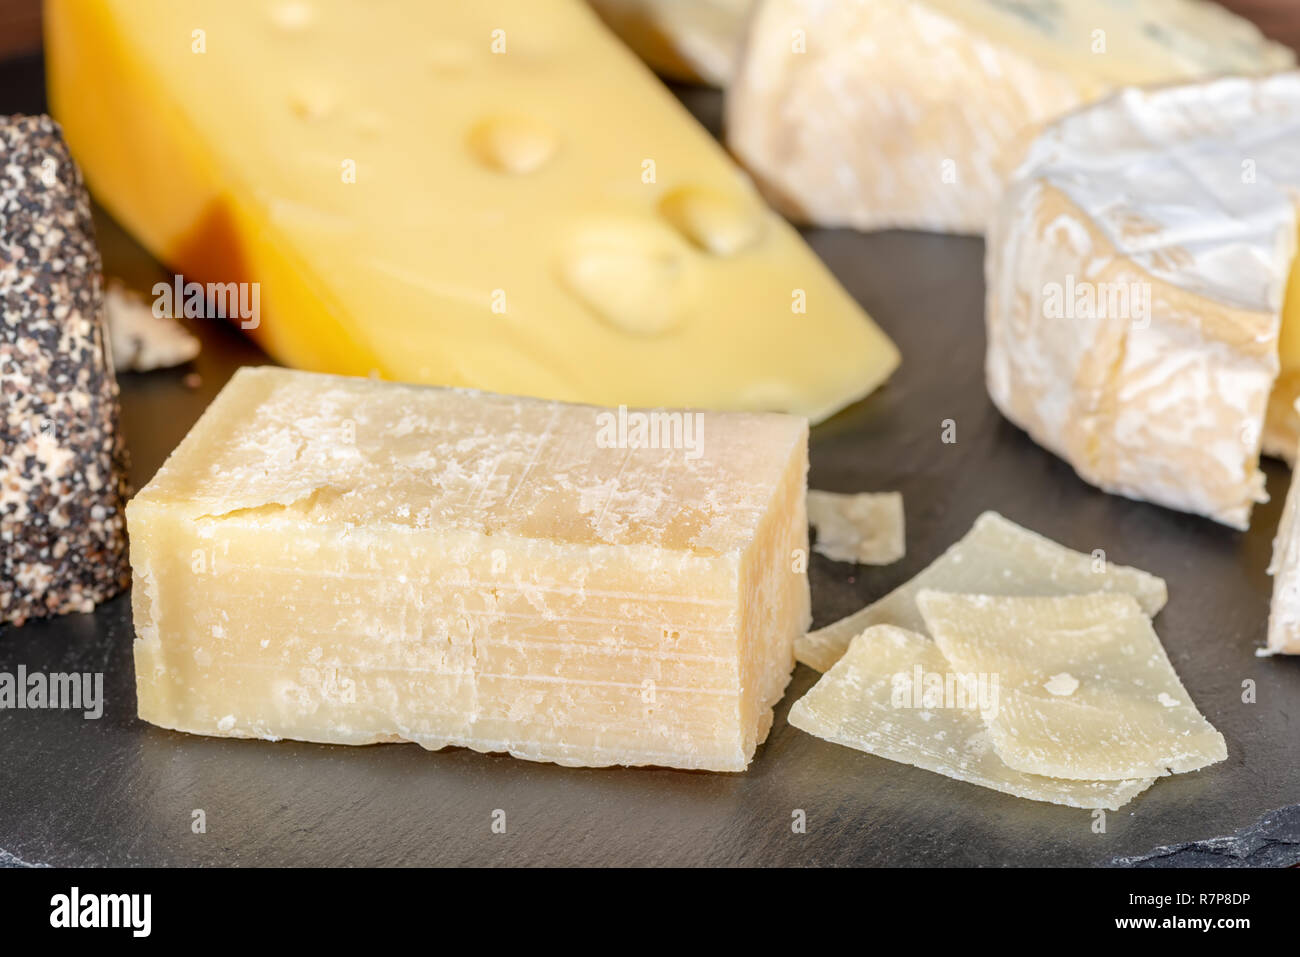 portion and slaced of fresh parmesan cheese and various types of cheese on black slate, close up - Stock Image